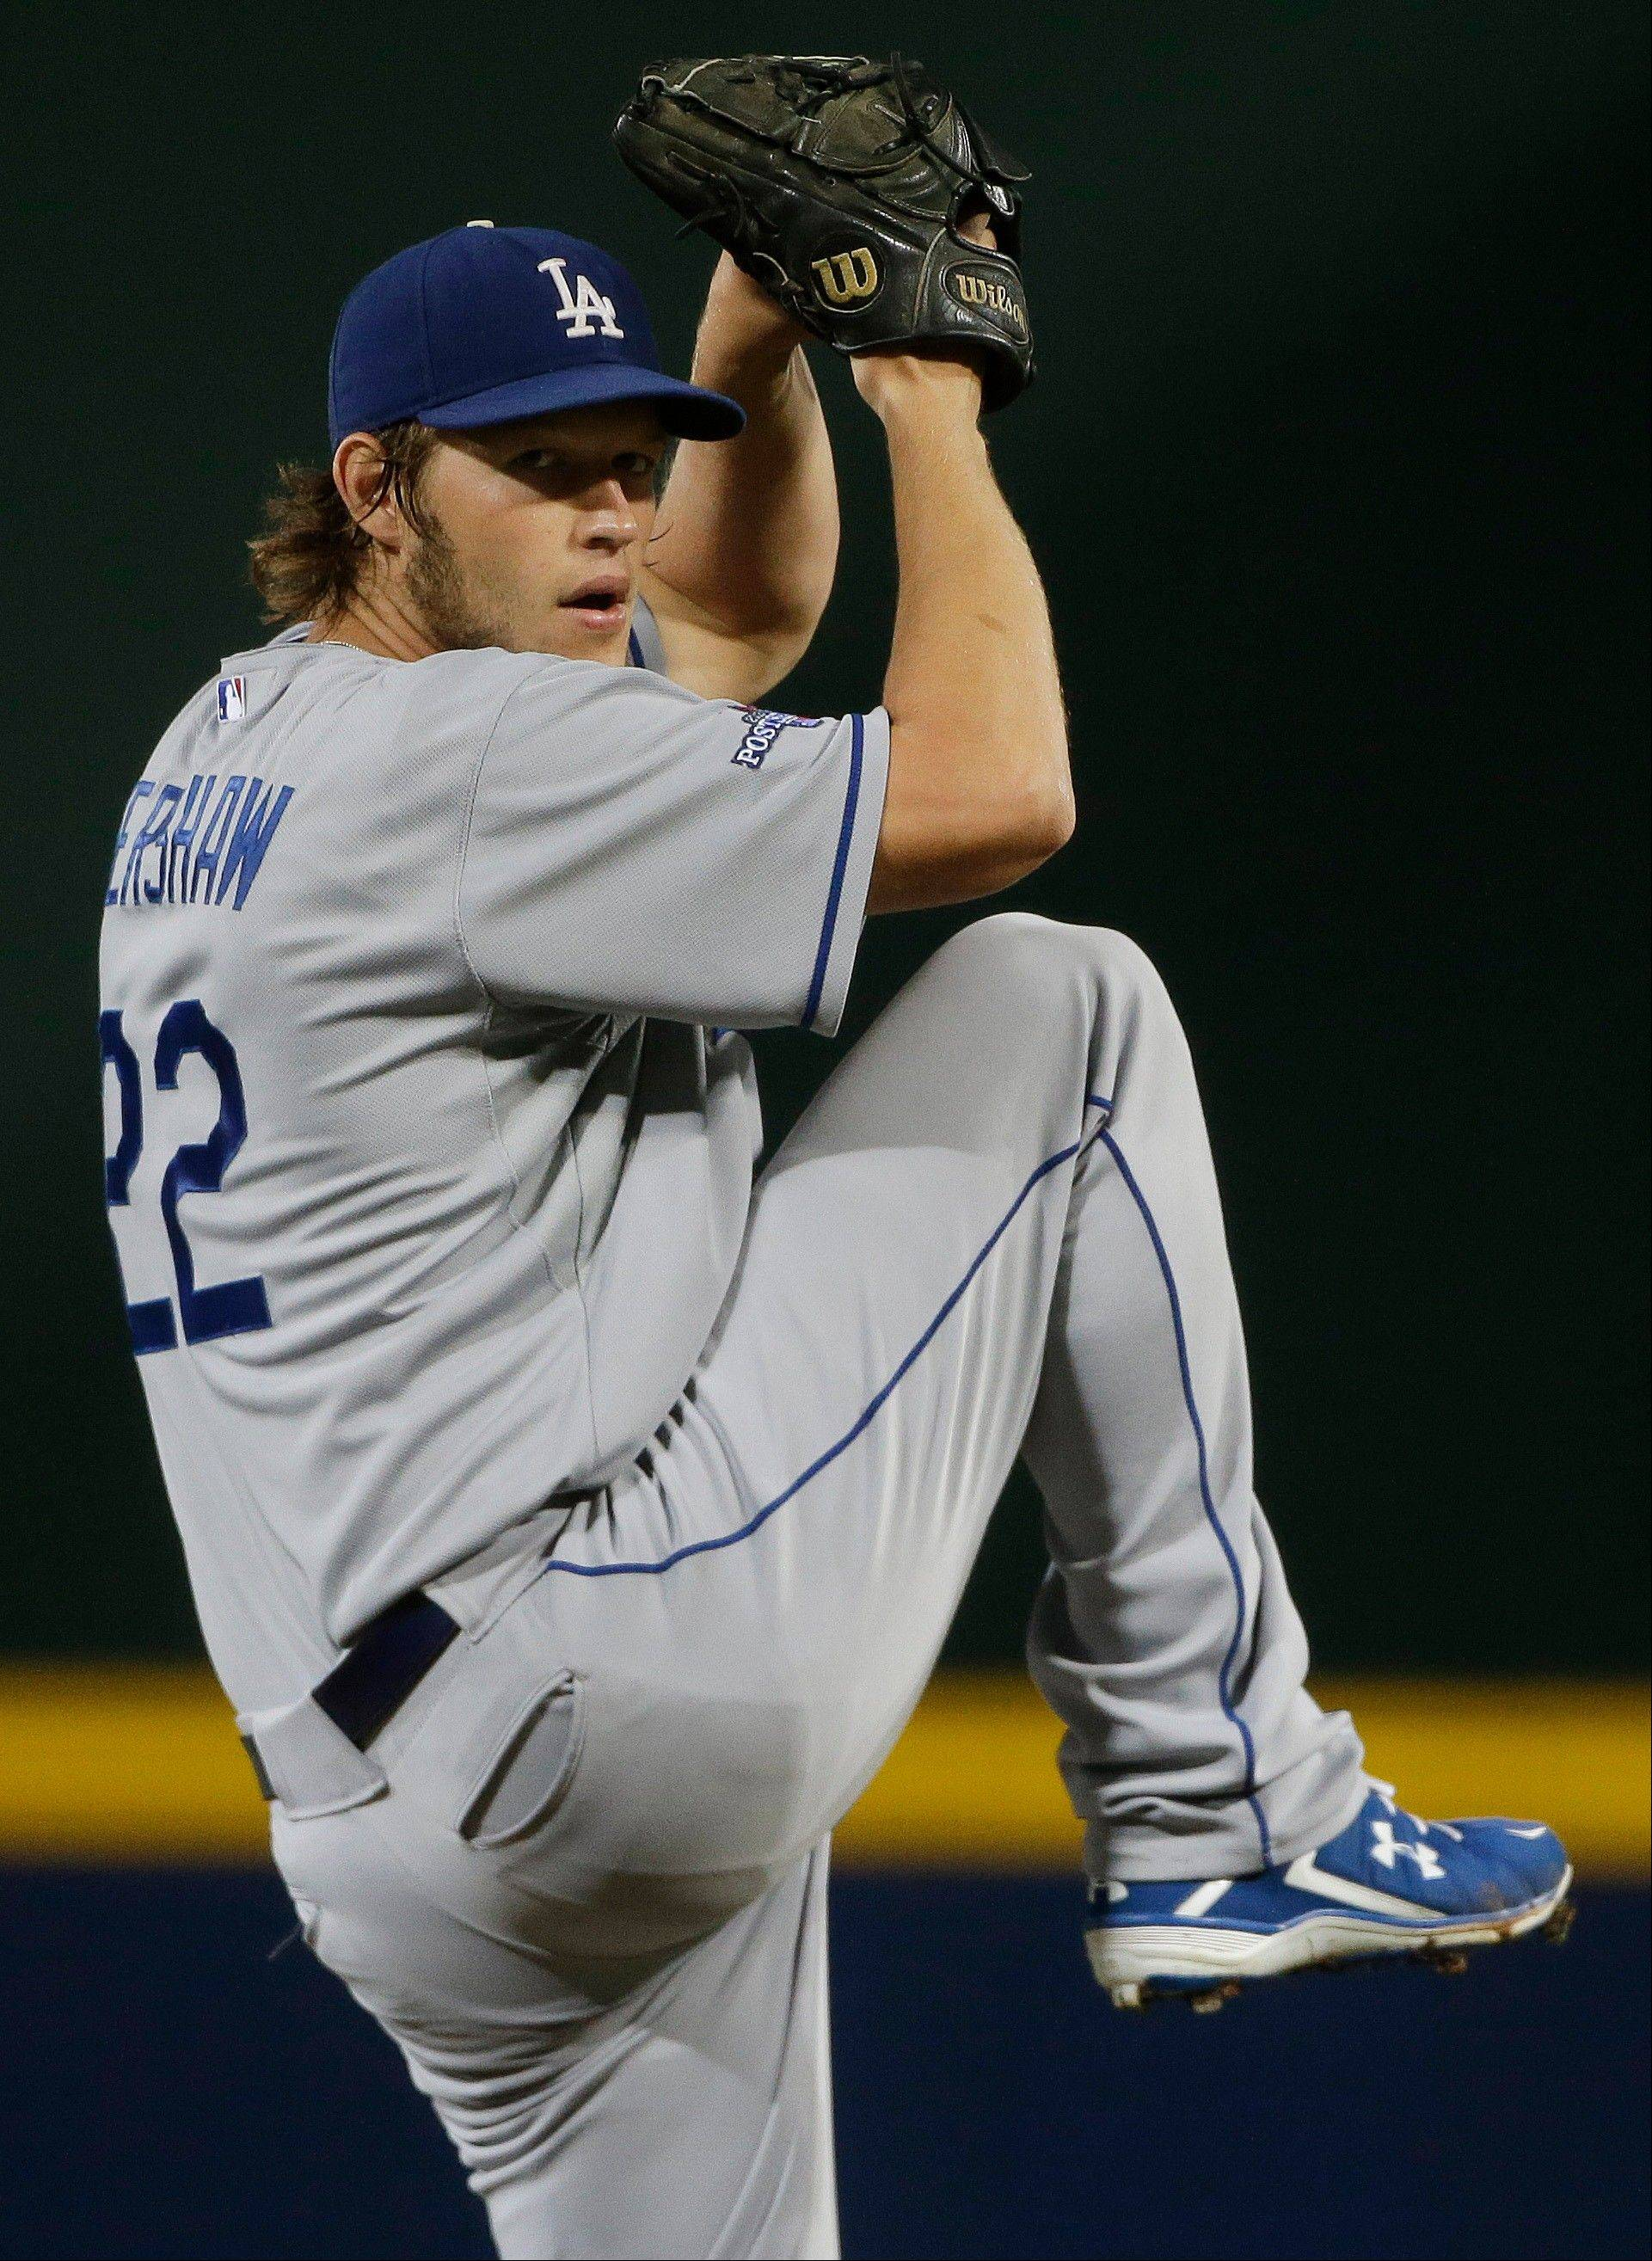 Los Angeles Dodgers starting pitcher Clayton Kershaw works against Atlanta Braves in the first inning of Game 1 of the National League Divisional Series, Thursday, Oct. 3, 2013, in Atlanta.